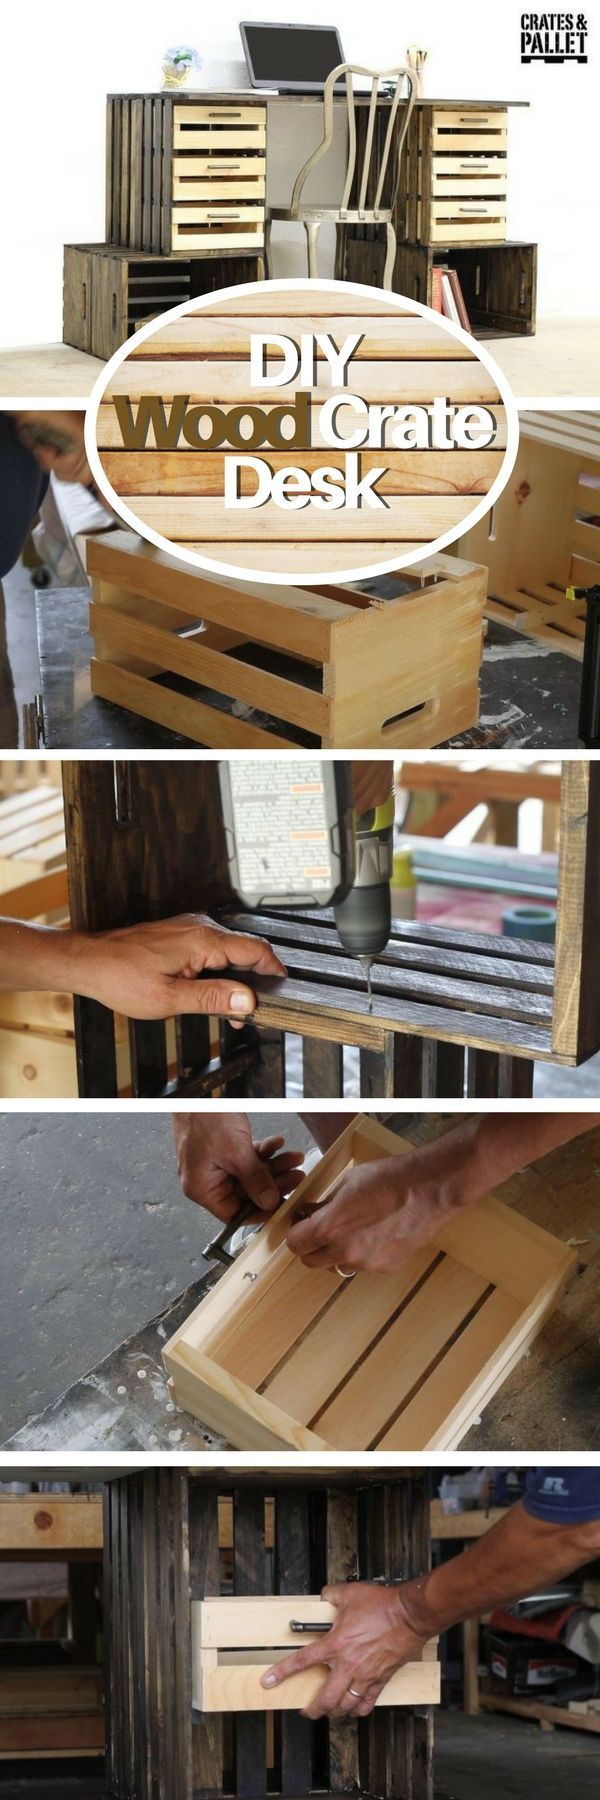 Check out how to build a DIY desk from wood crates @Industry Standard Design